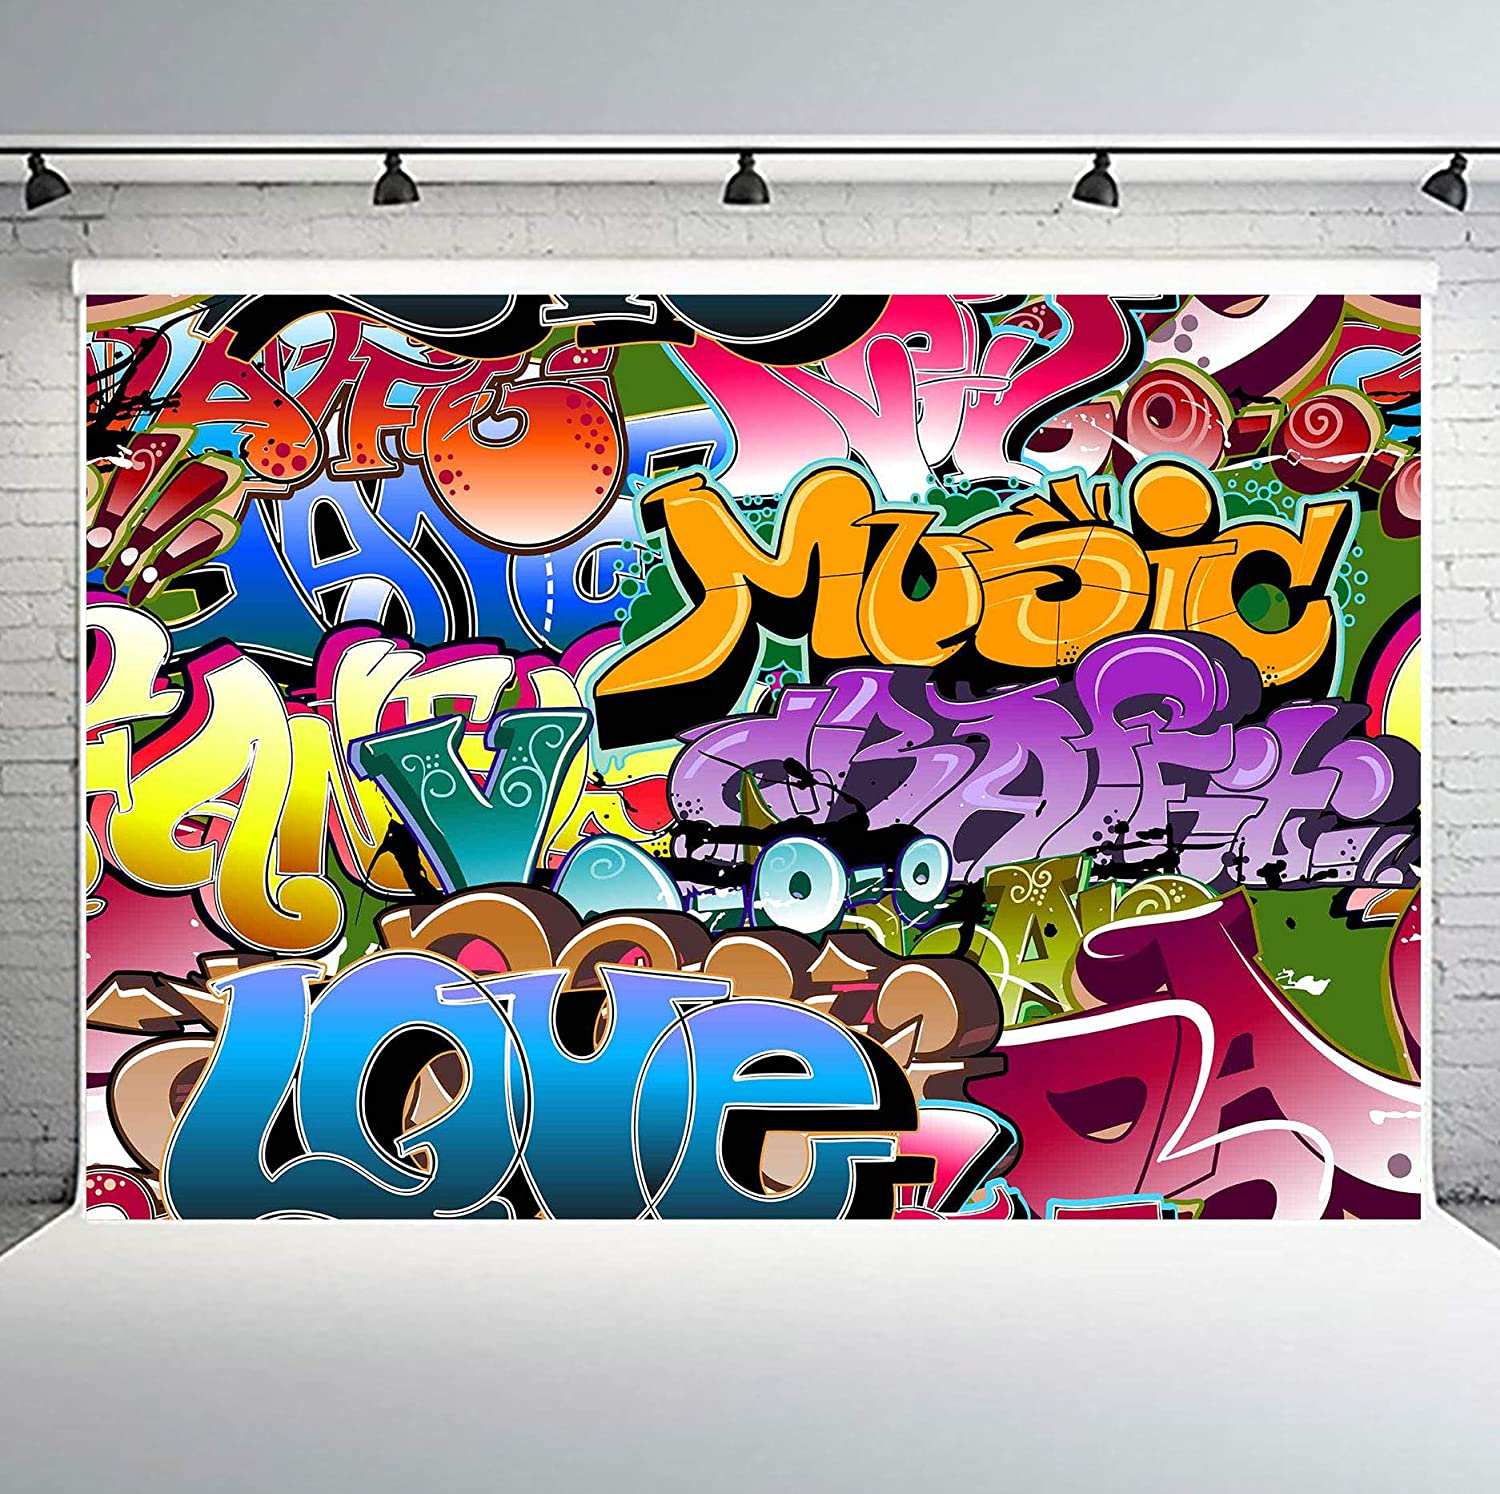 Amazon com phmojen 10x7ft graffiti style background 80s 90s themed party backdrop for photography hip hop background studio props geph035 camera